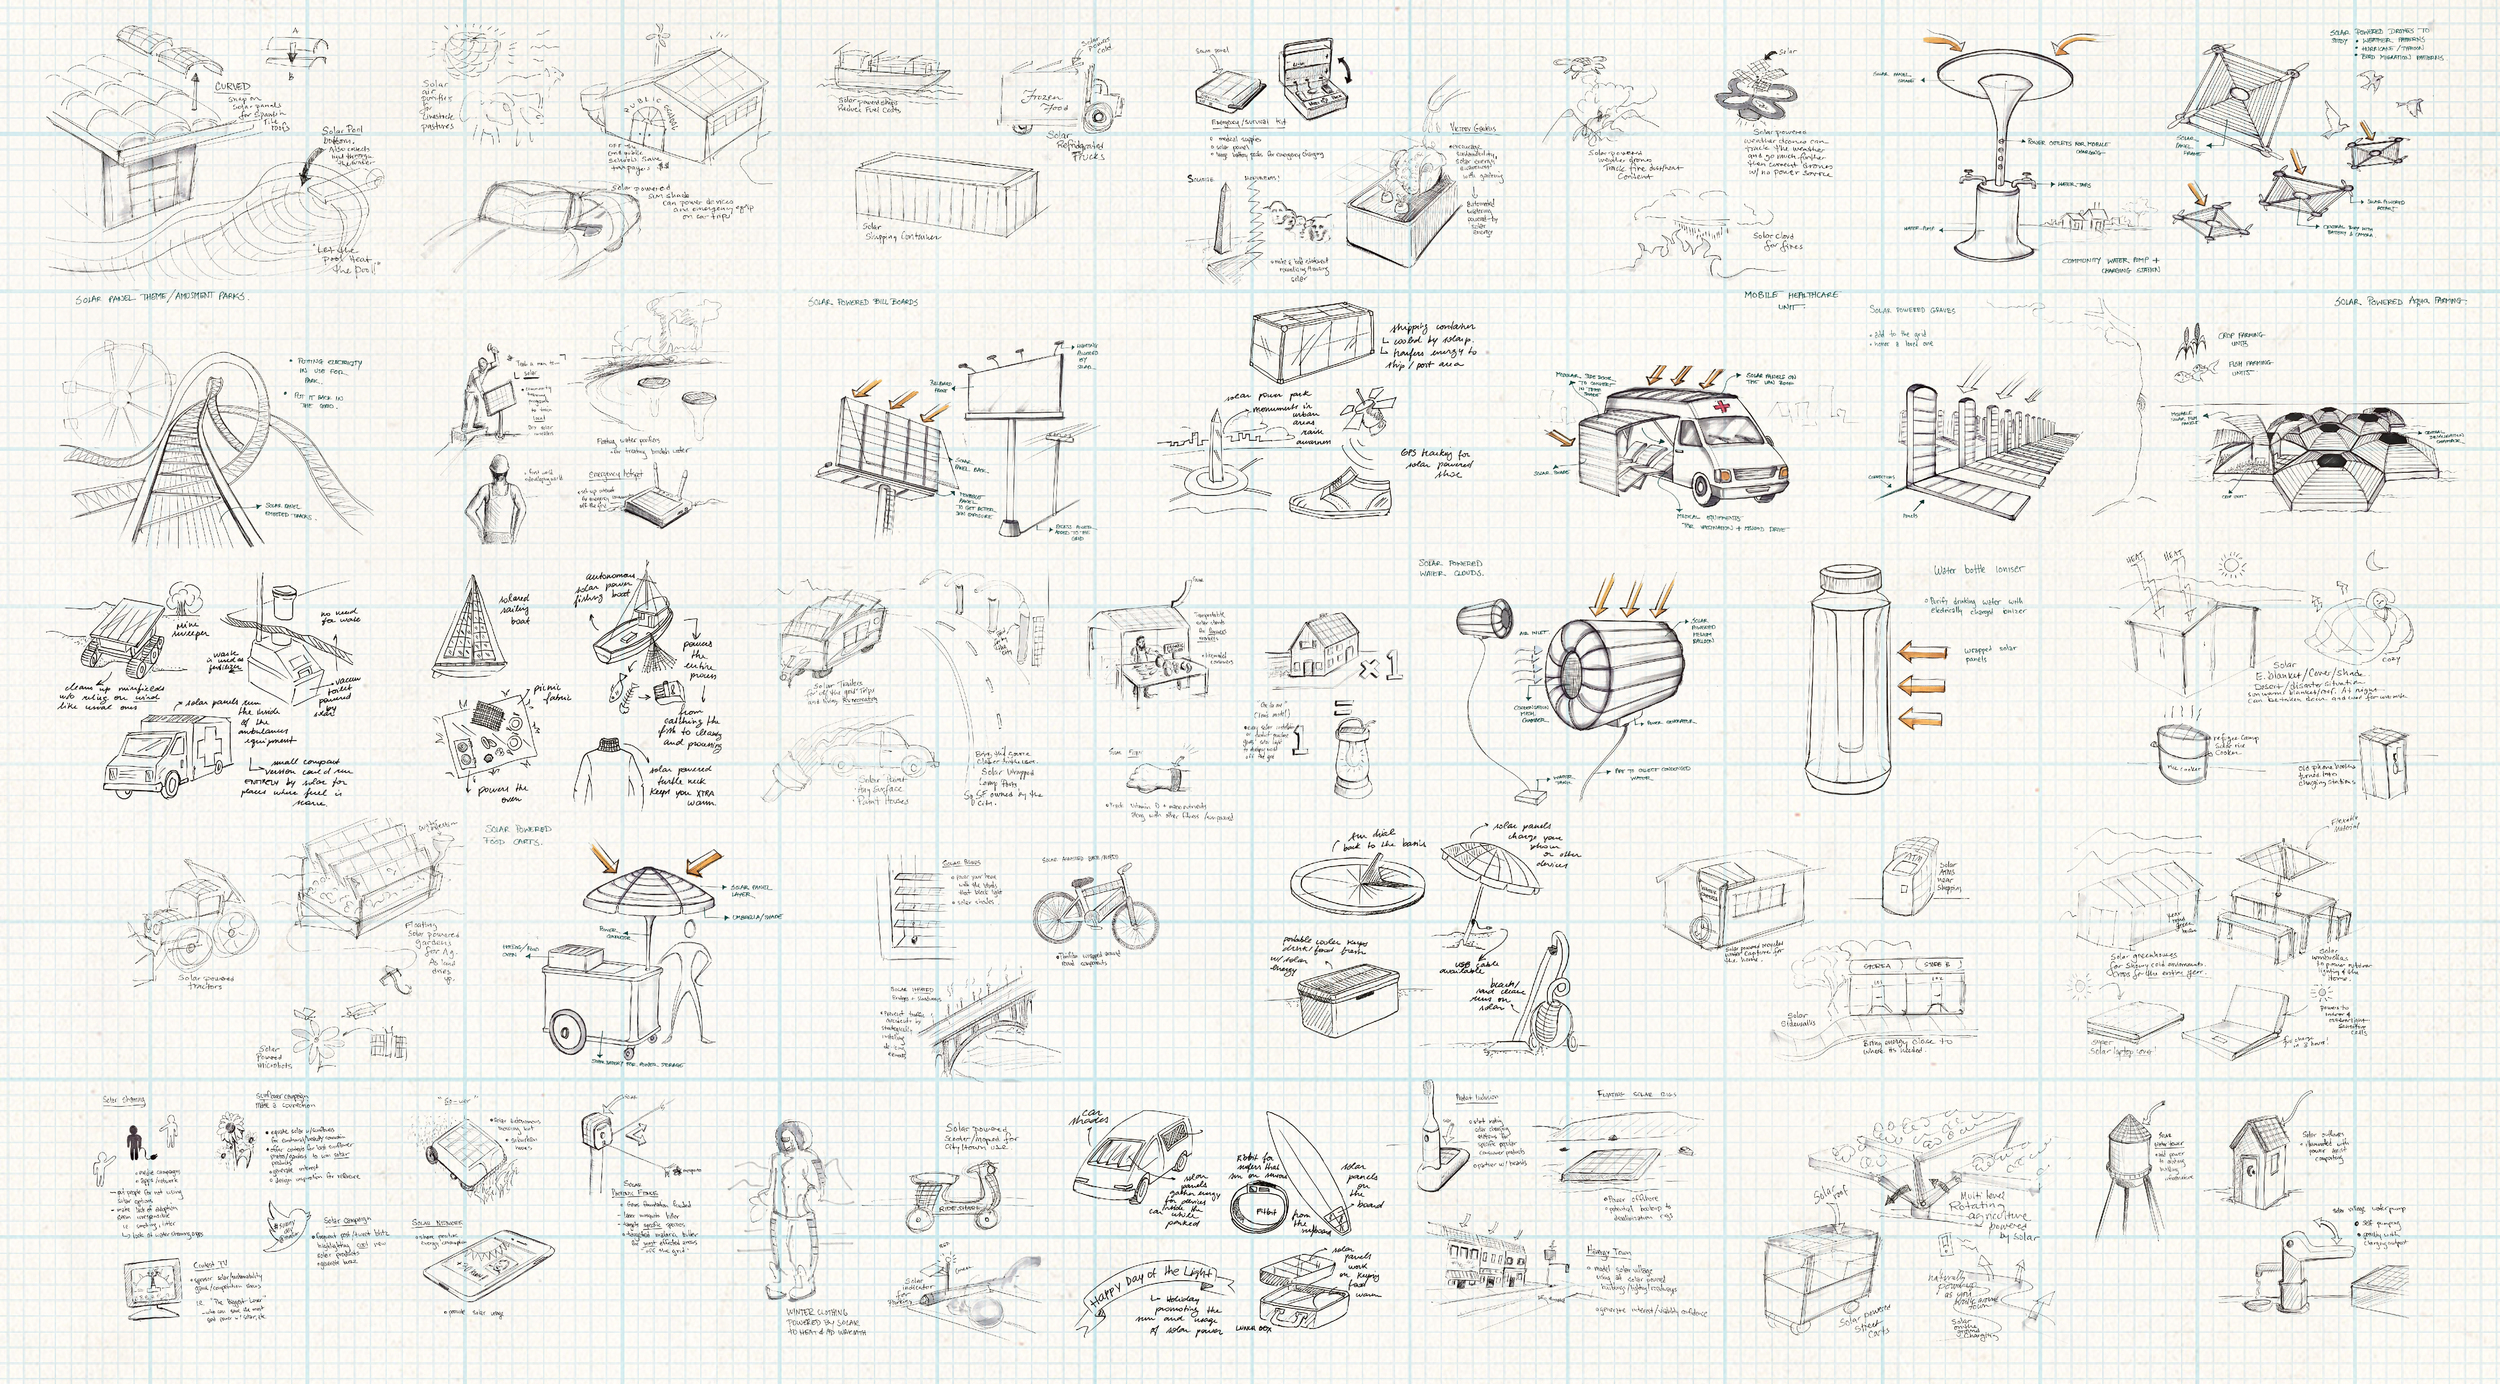 More than 50 distinct ideas were diagrammed during the ideation phase, some blue sky and others more practical.